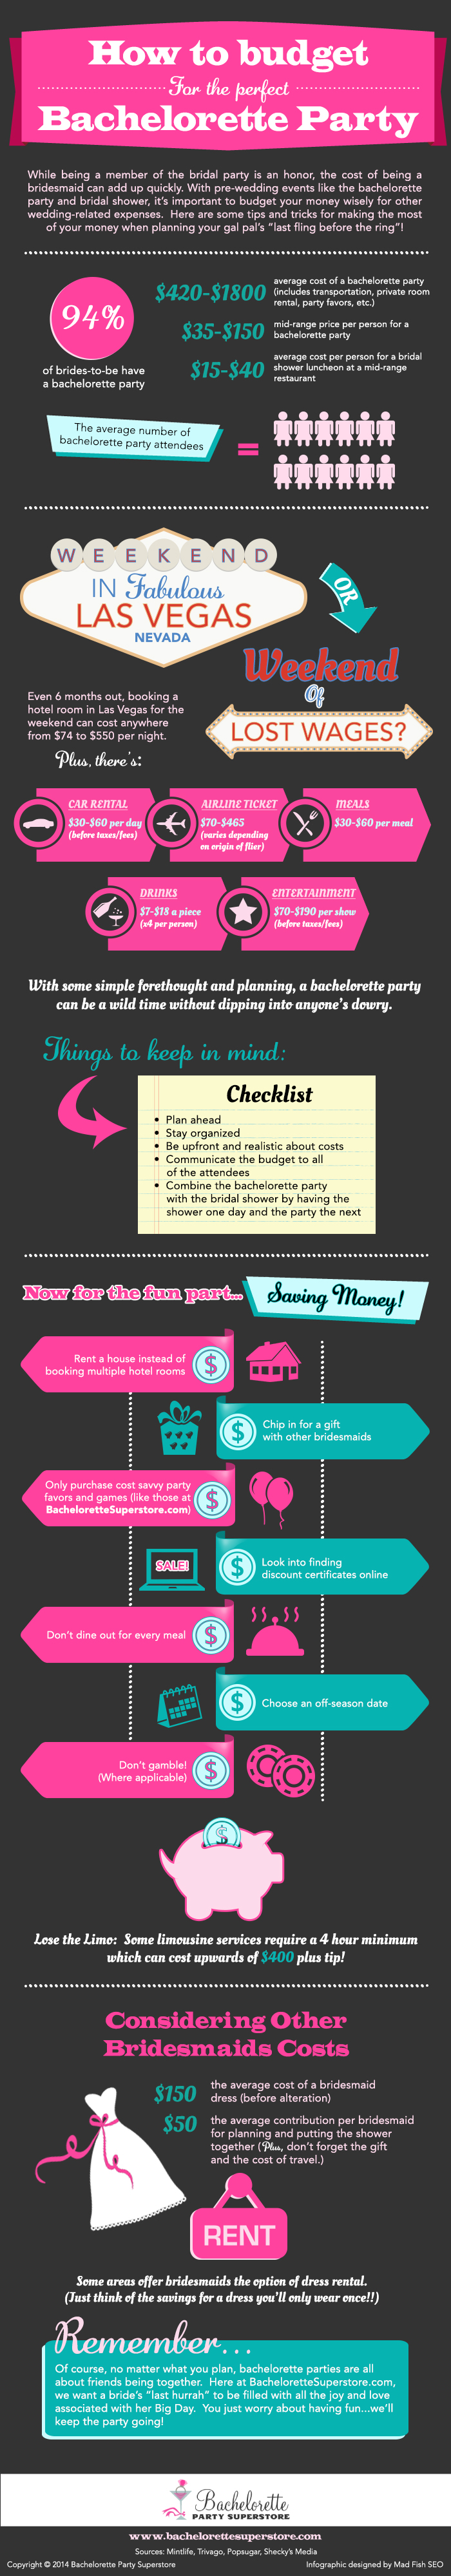 How to Budget for the Perfect Bachelorette Party